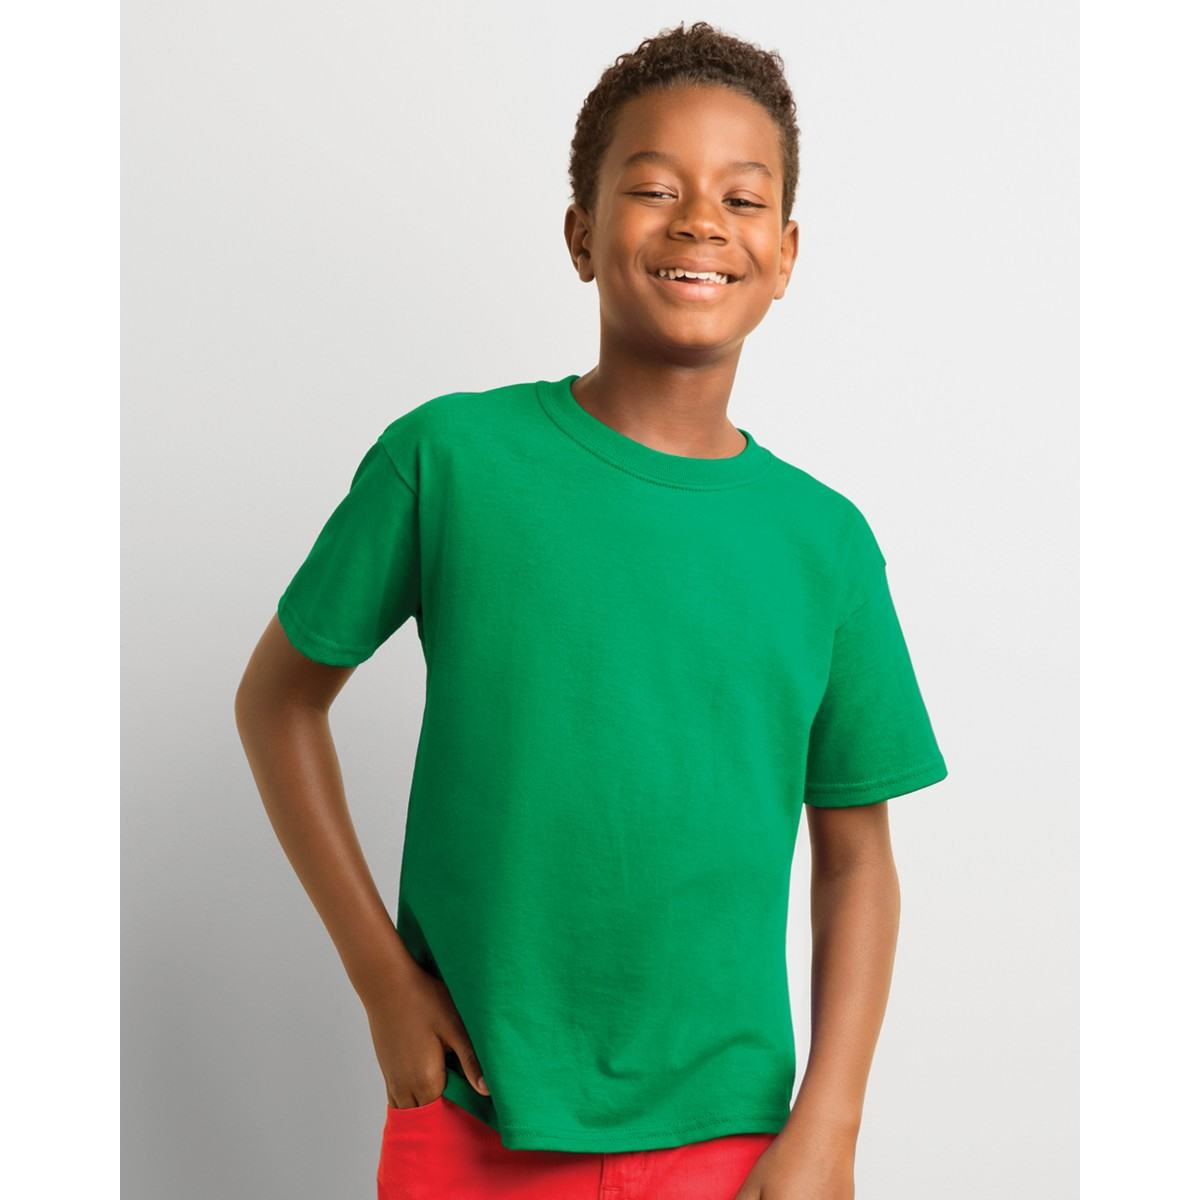 Green Kids T-shirt